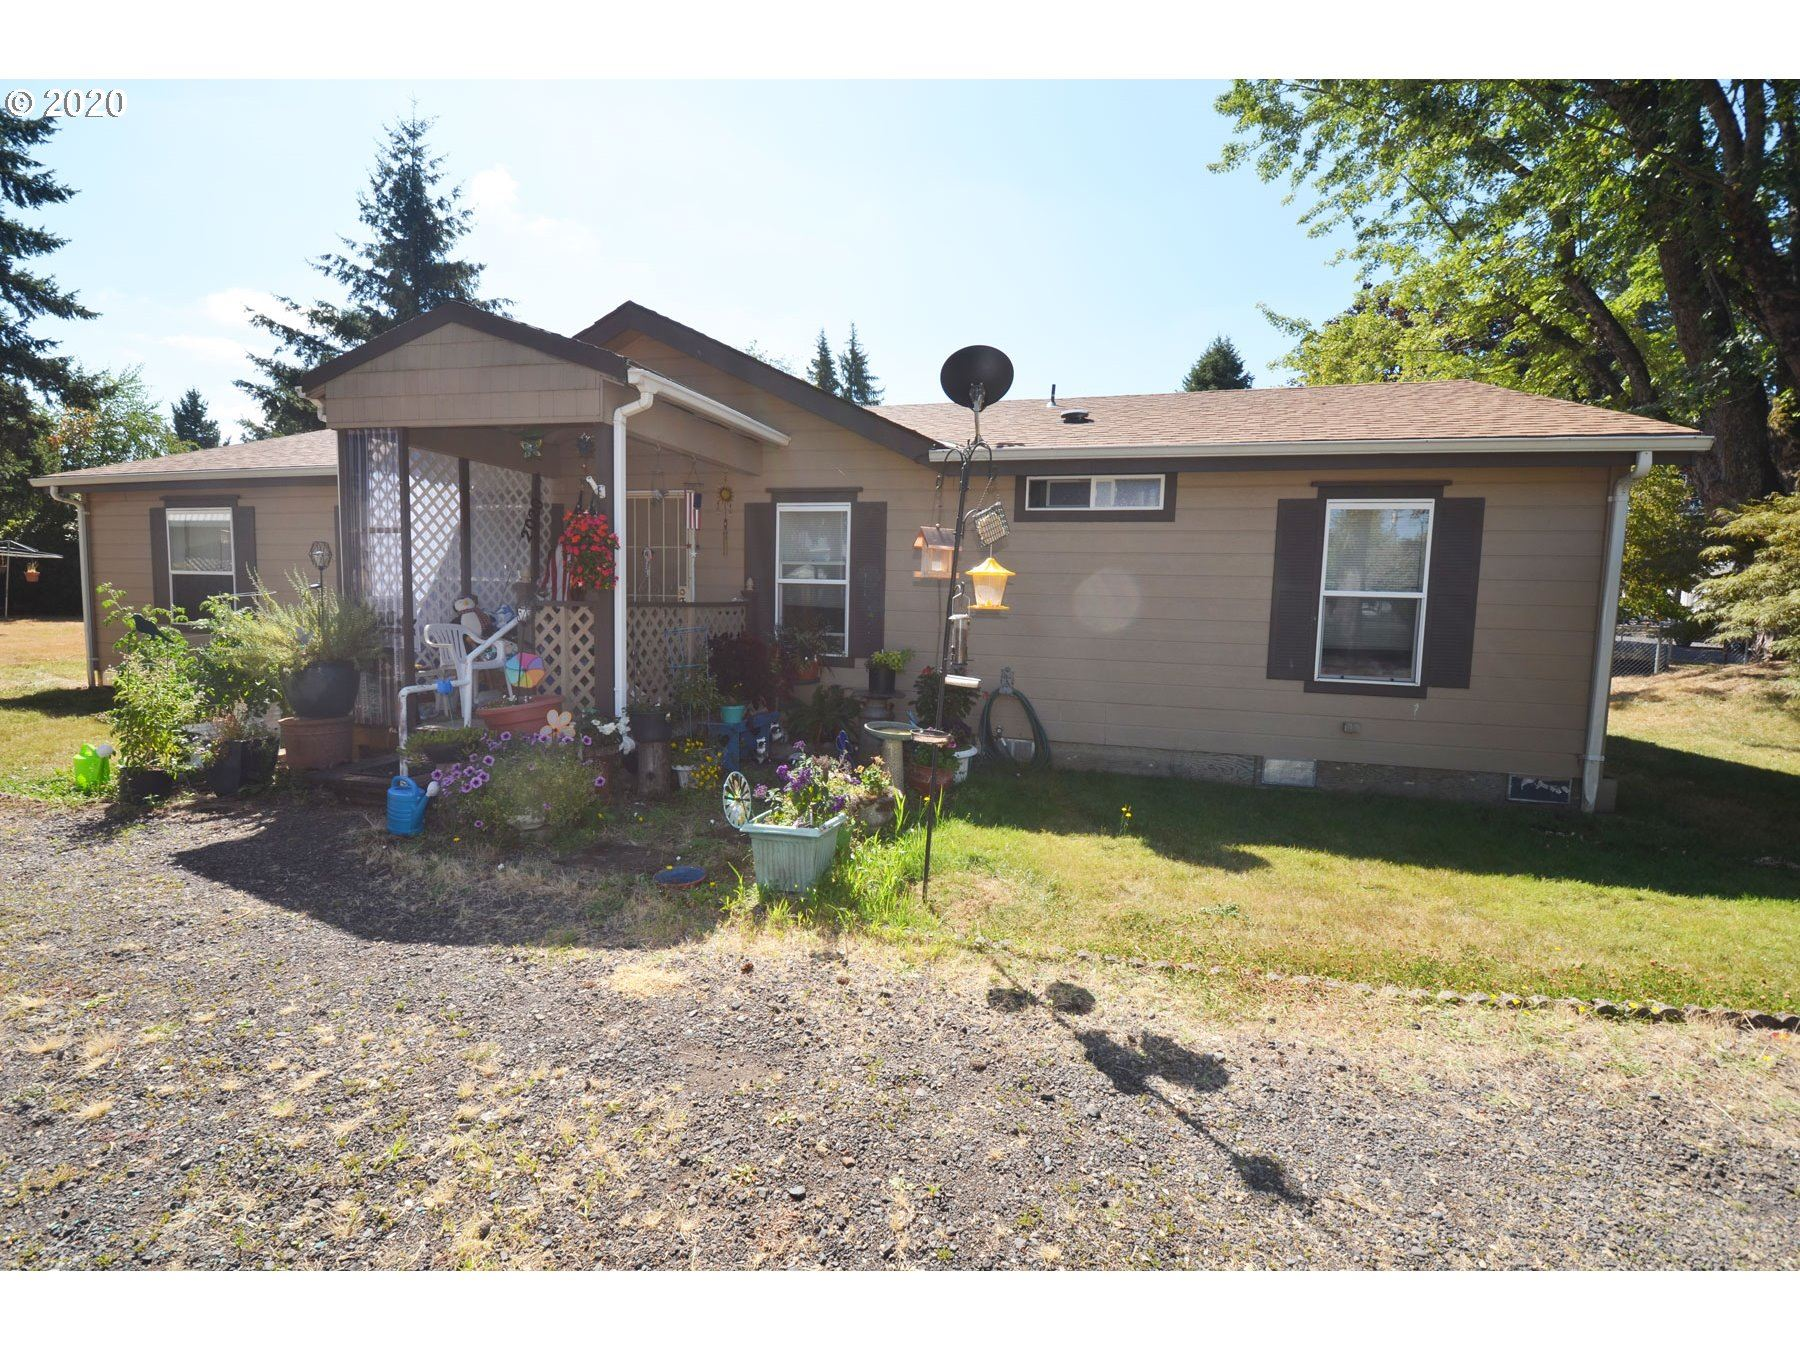 1640 SE 176TH AVE, Portland, OR 97233 - MLS#: 20292288